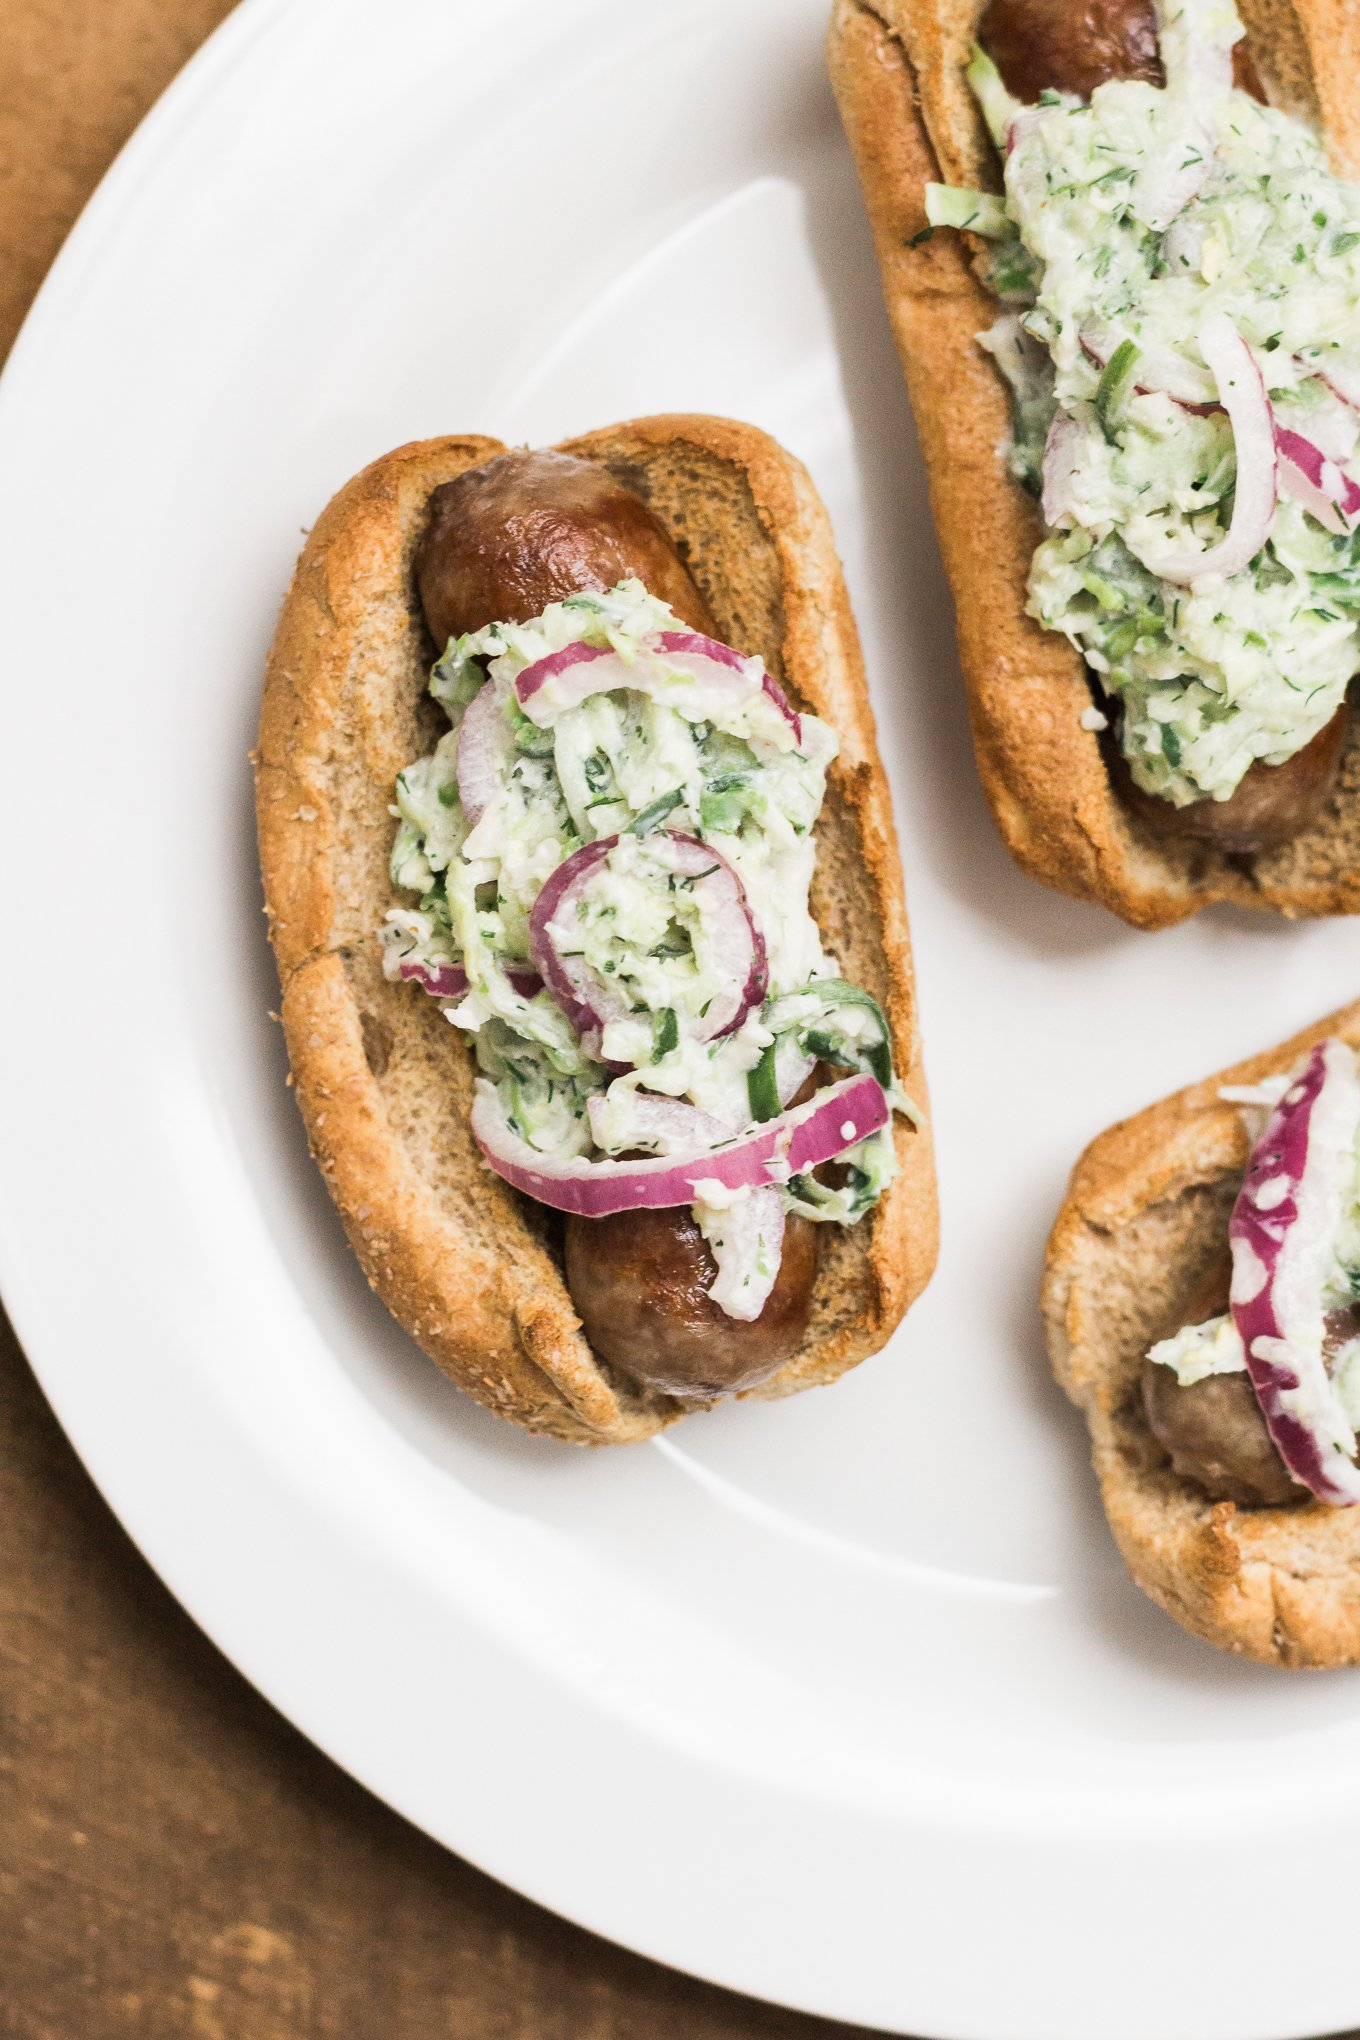 johnsonville brats, cucumber slaw, food blog, cooking blog, all natural brats